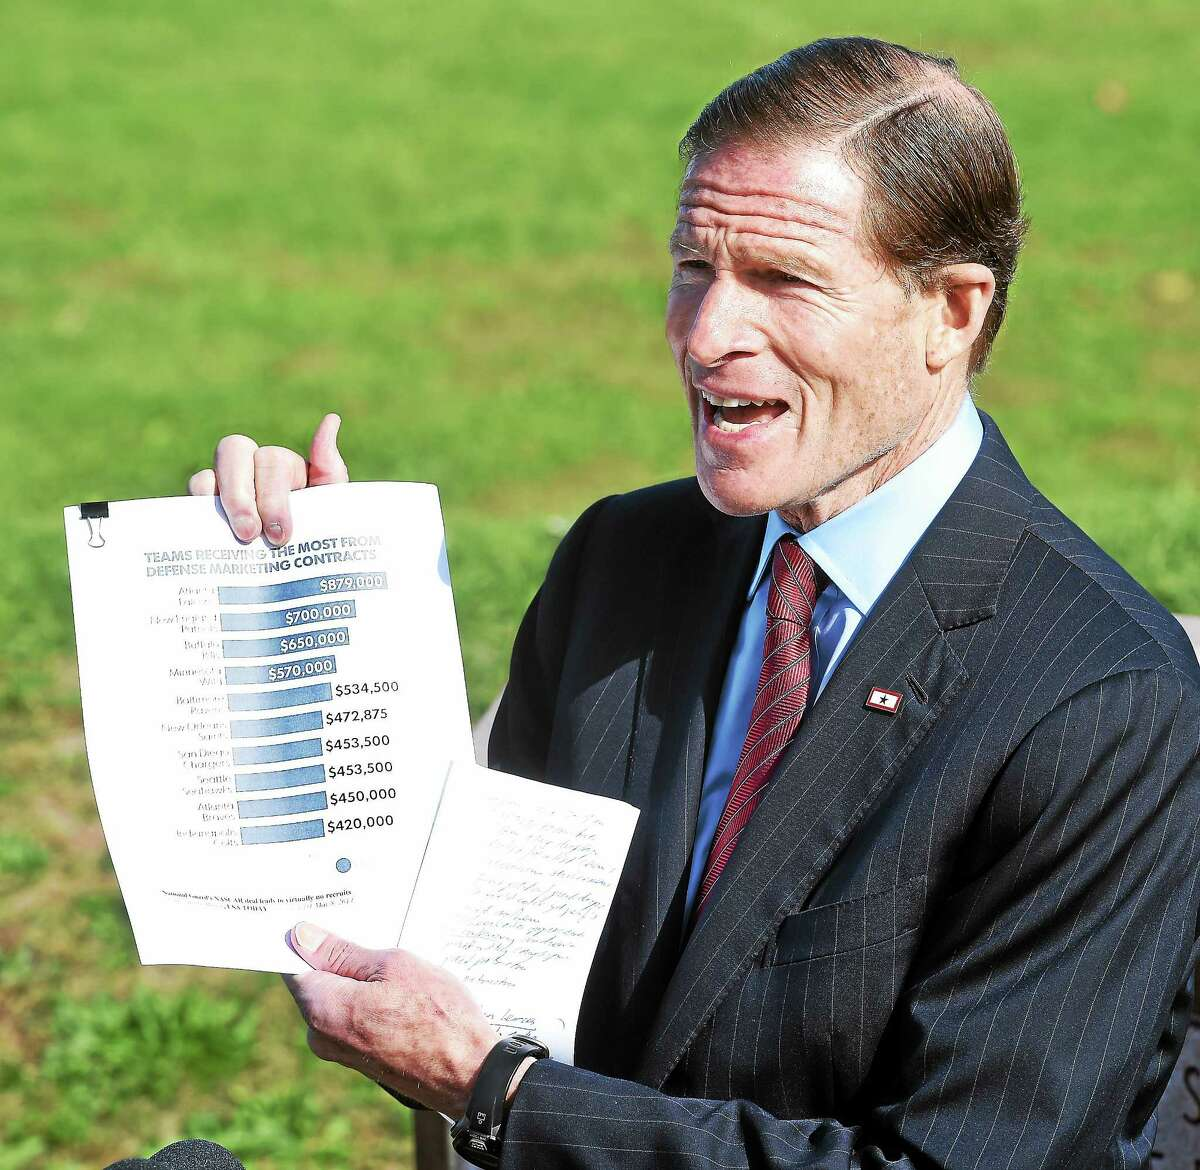 U.S. Sen. Richard Blumenthal displays a list of the highest compensated NFL teams benefiting from defense marketing contracts for patriotic displays and performances, during a press conference Monday in New Haven.